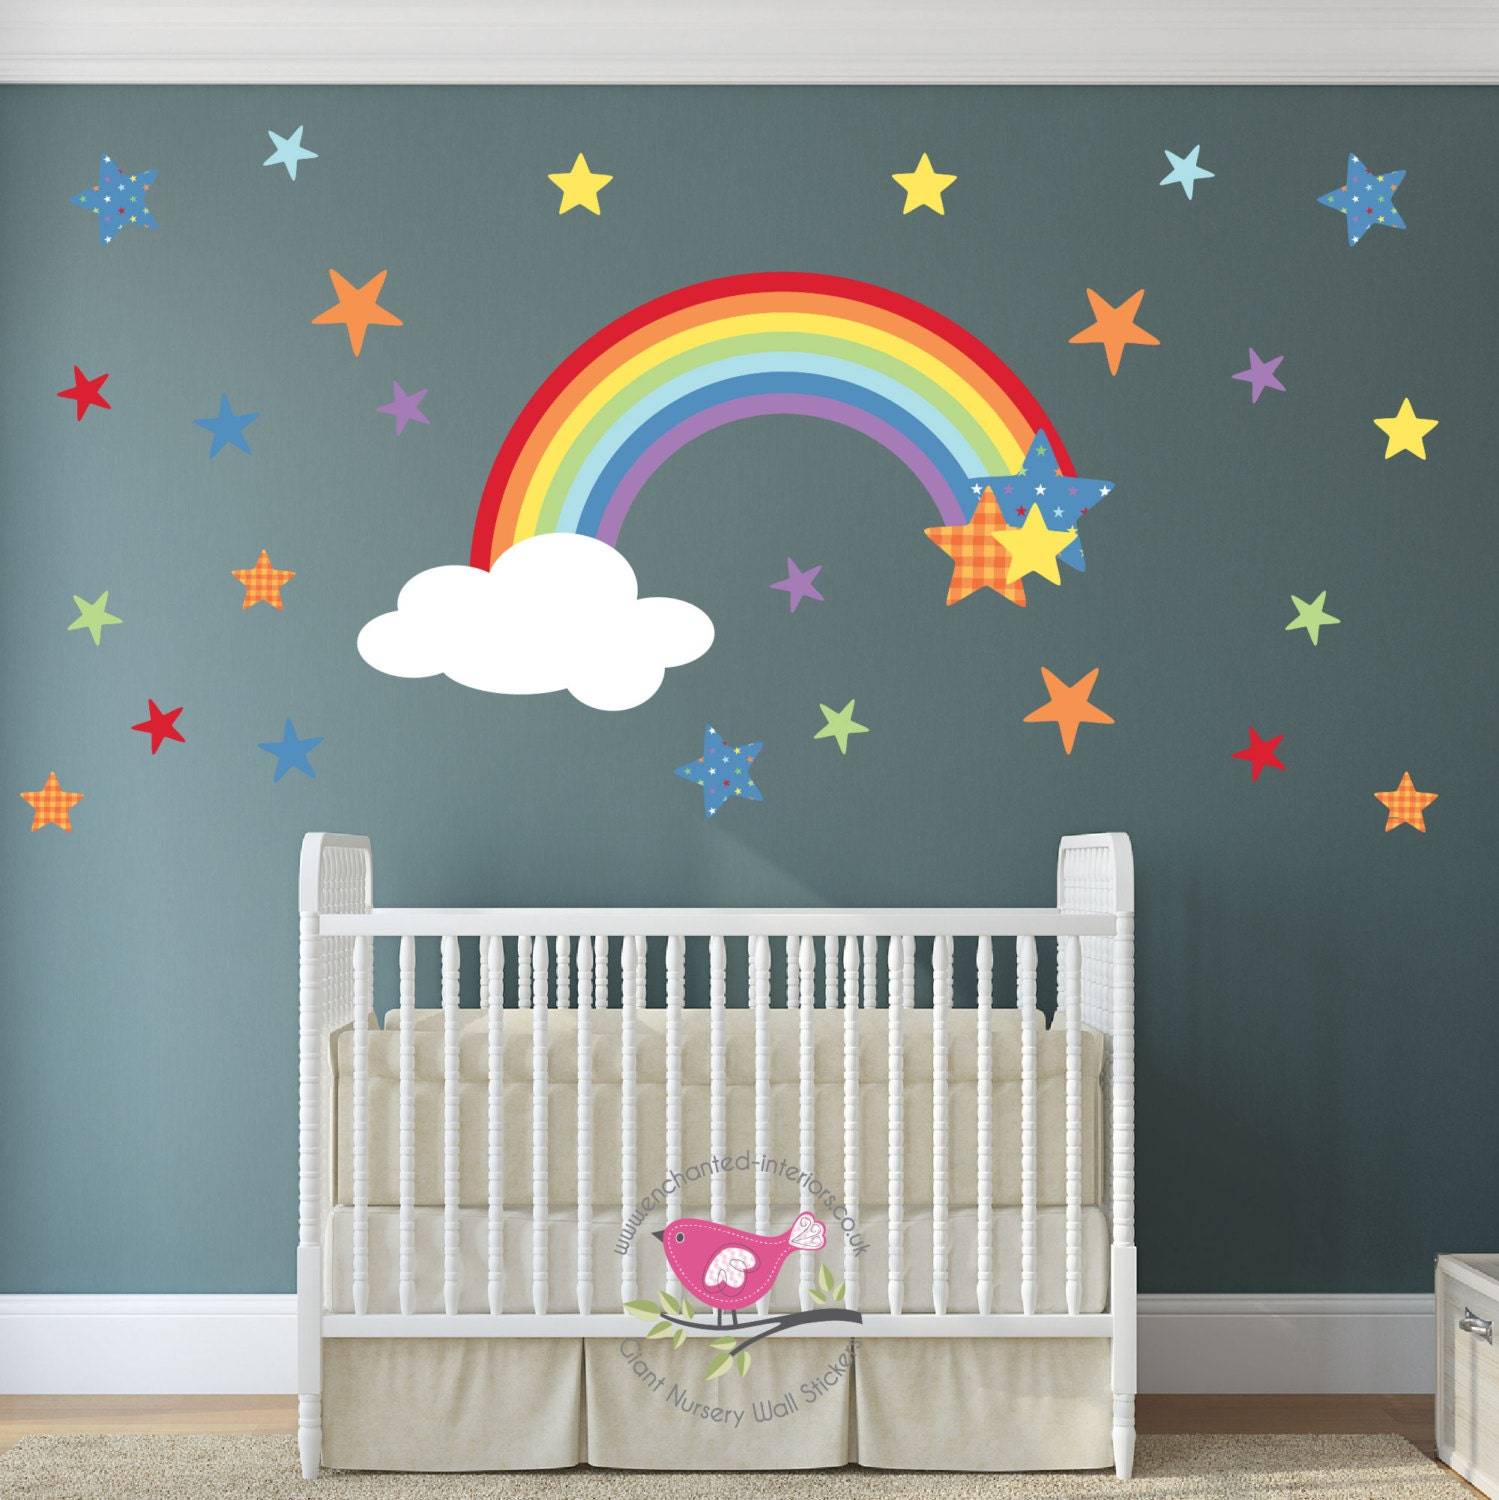 Magical Rainbow Wall Decal Star Wall Stickers Boy Or Girl